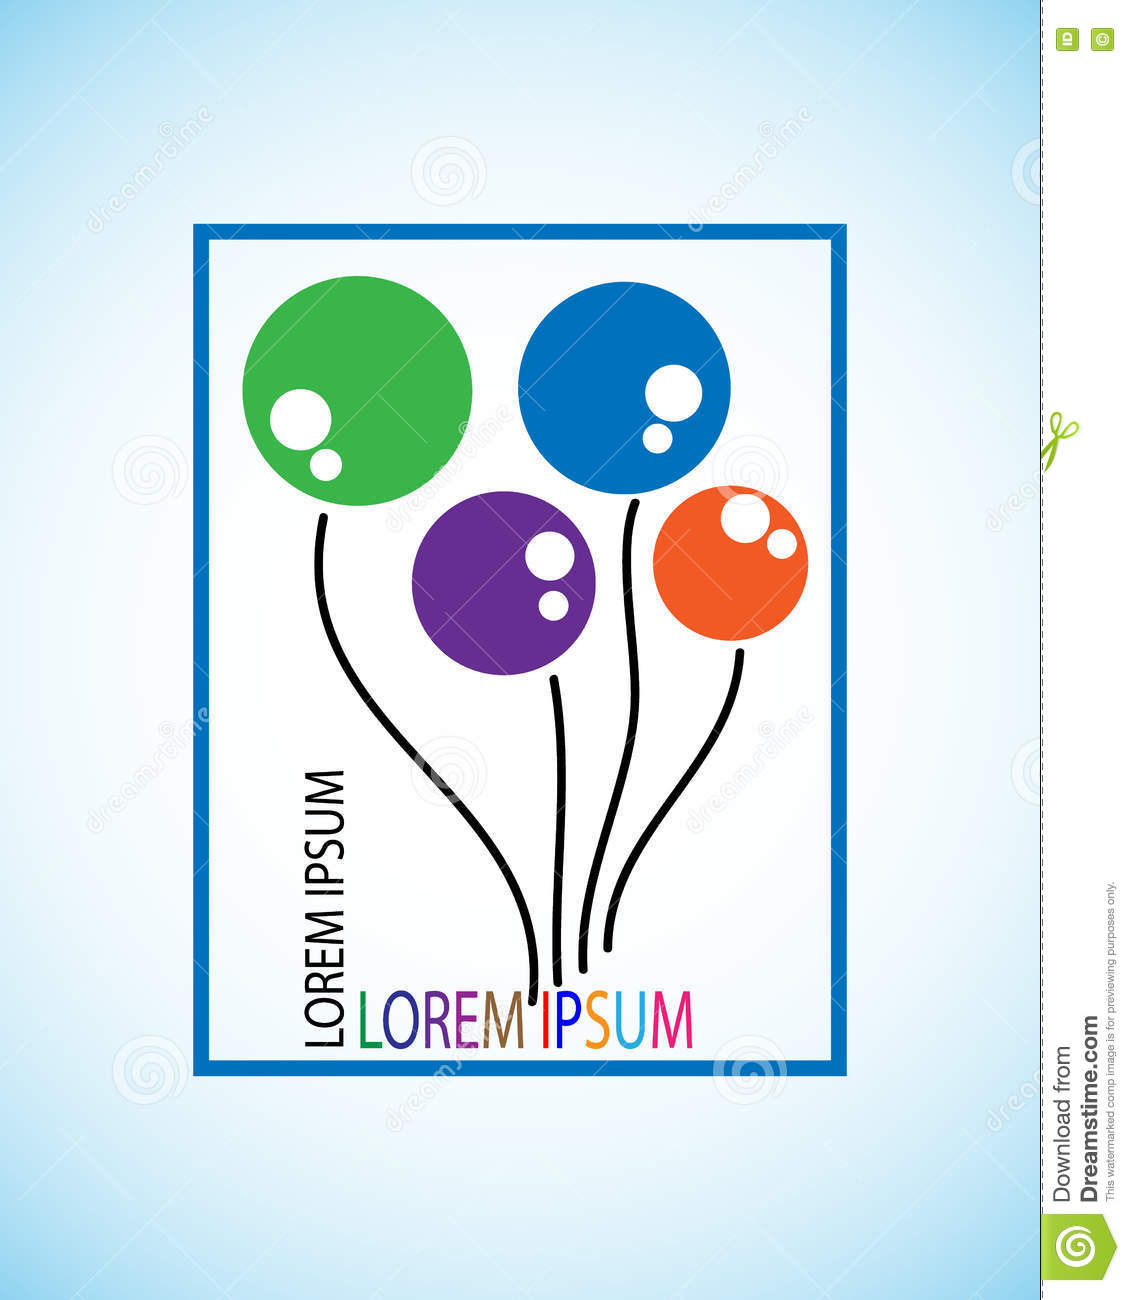 Symbol Of Balloon This Represents The Concept Of Creativity With